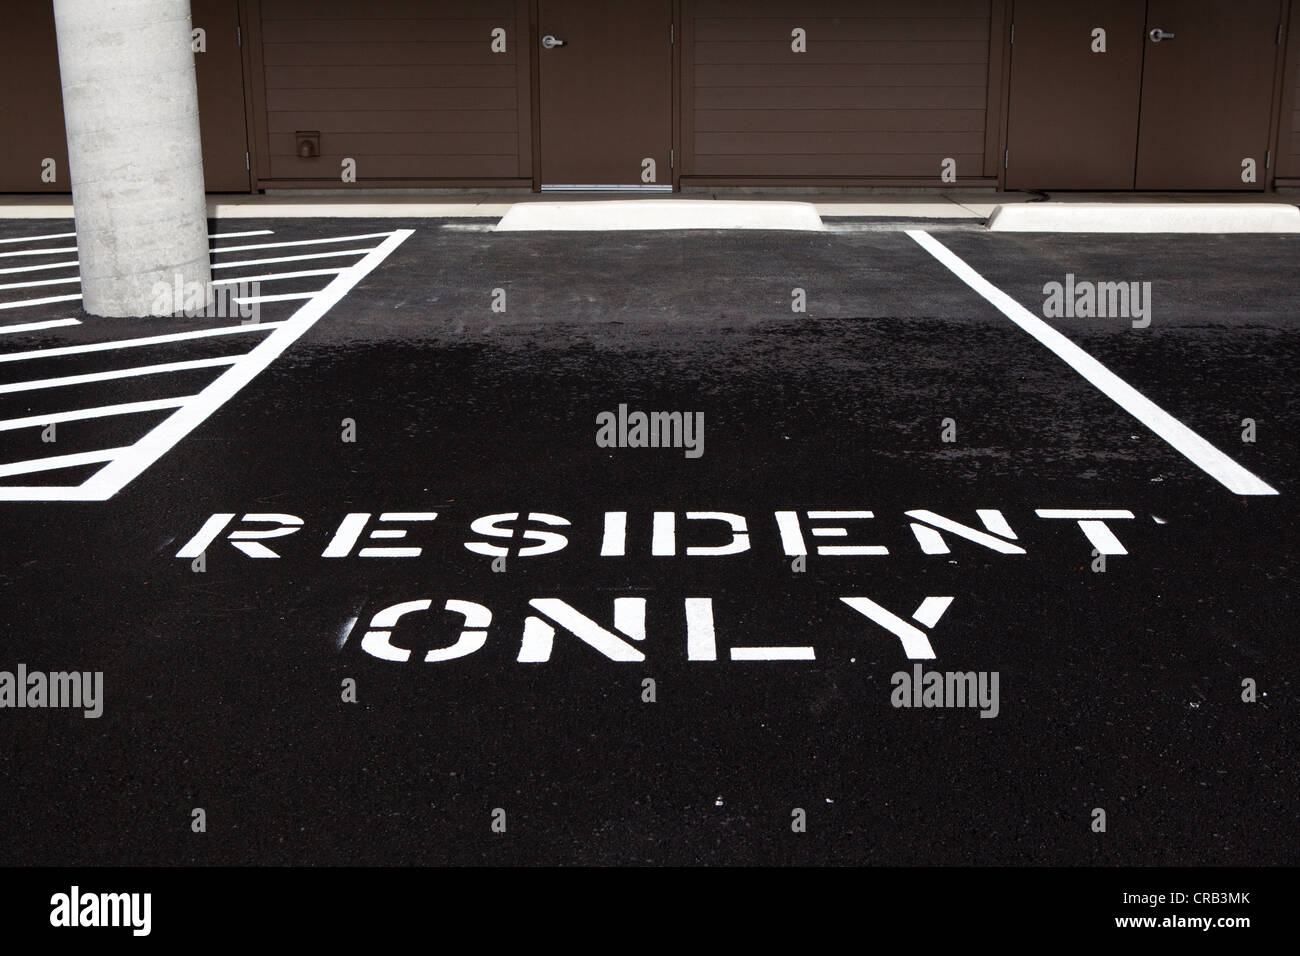 Resident only designated parking space. - Stock Image